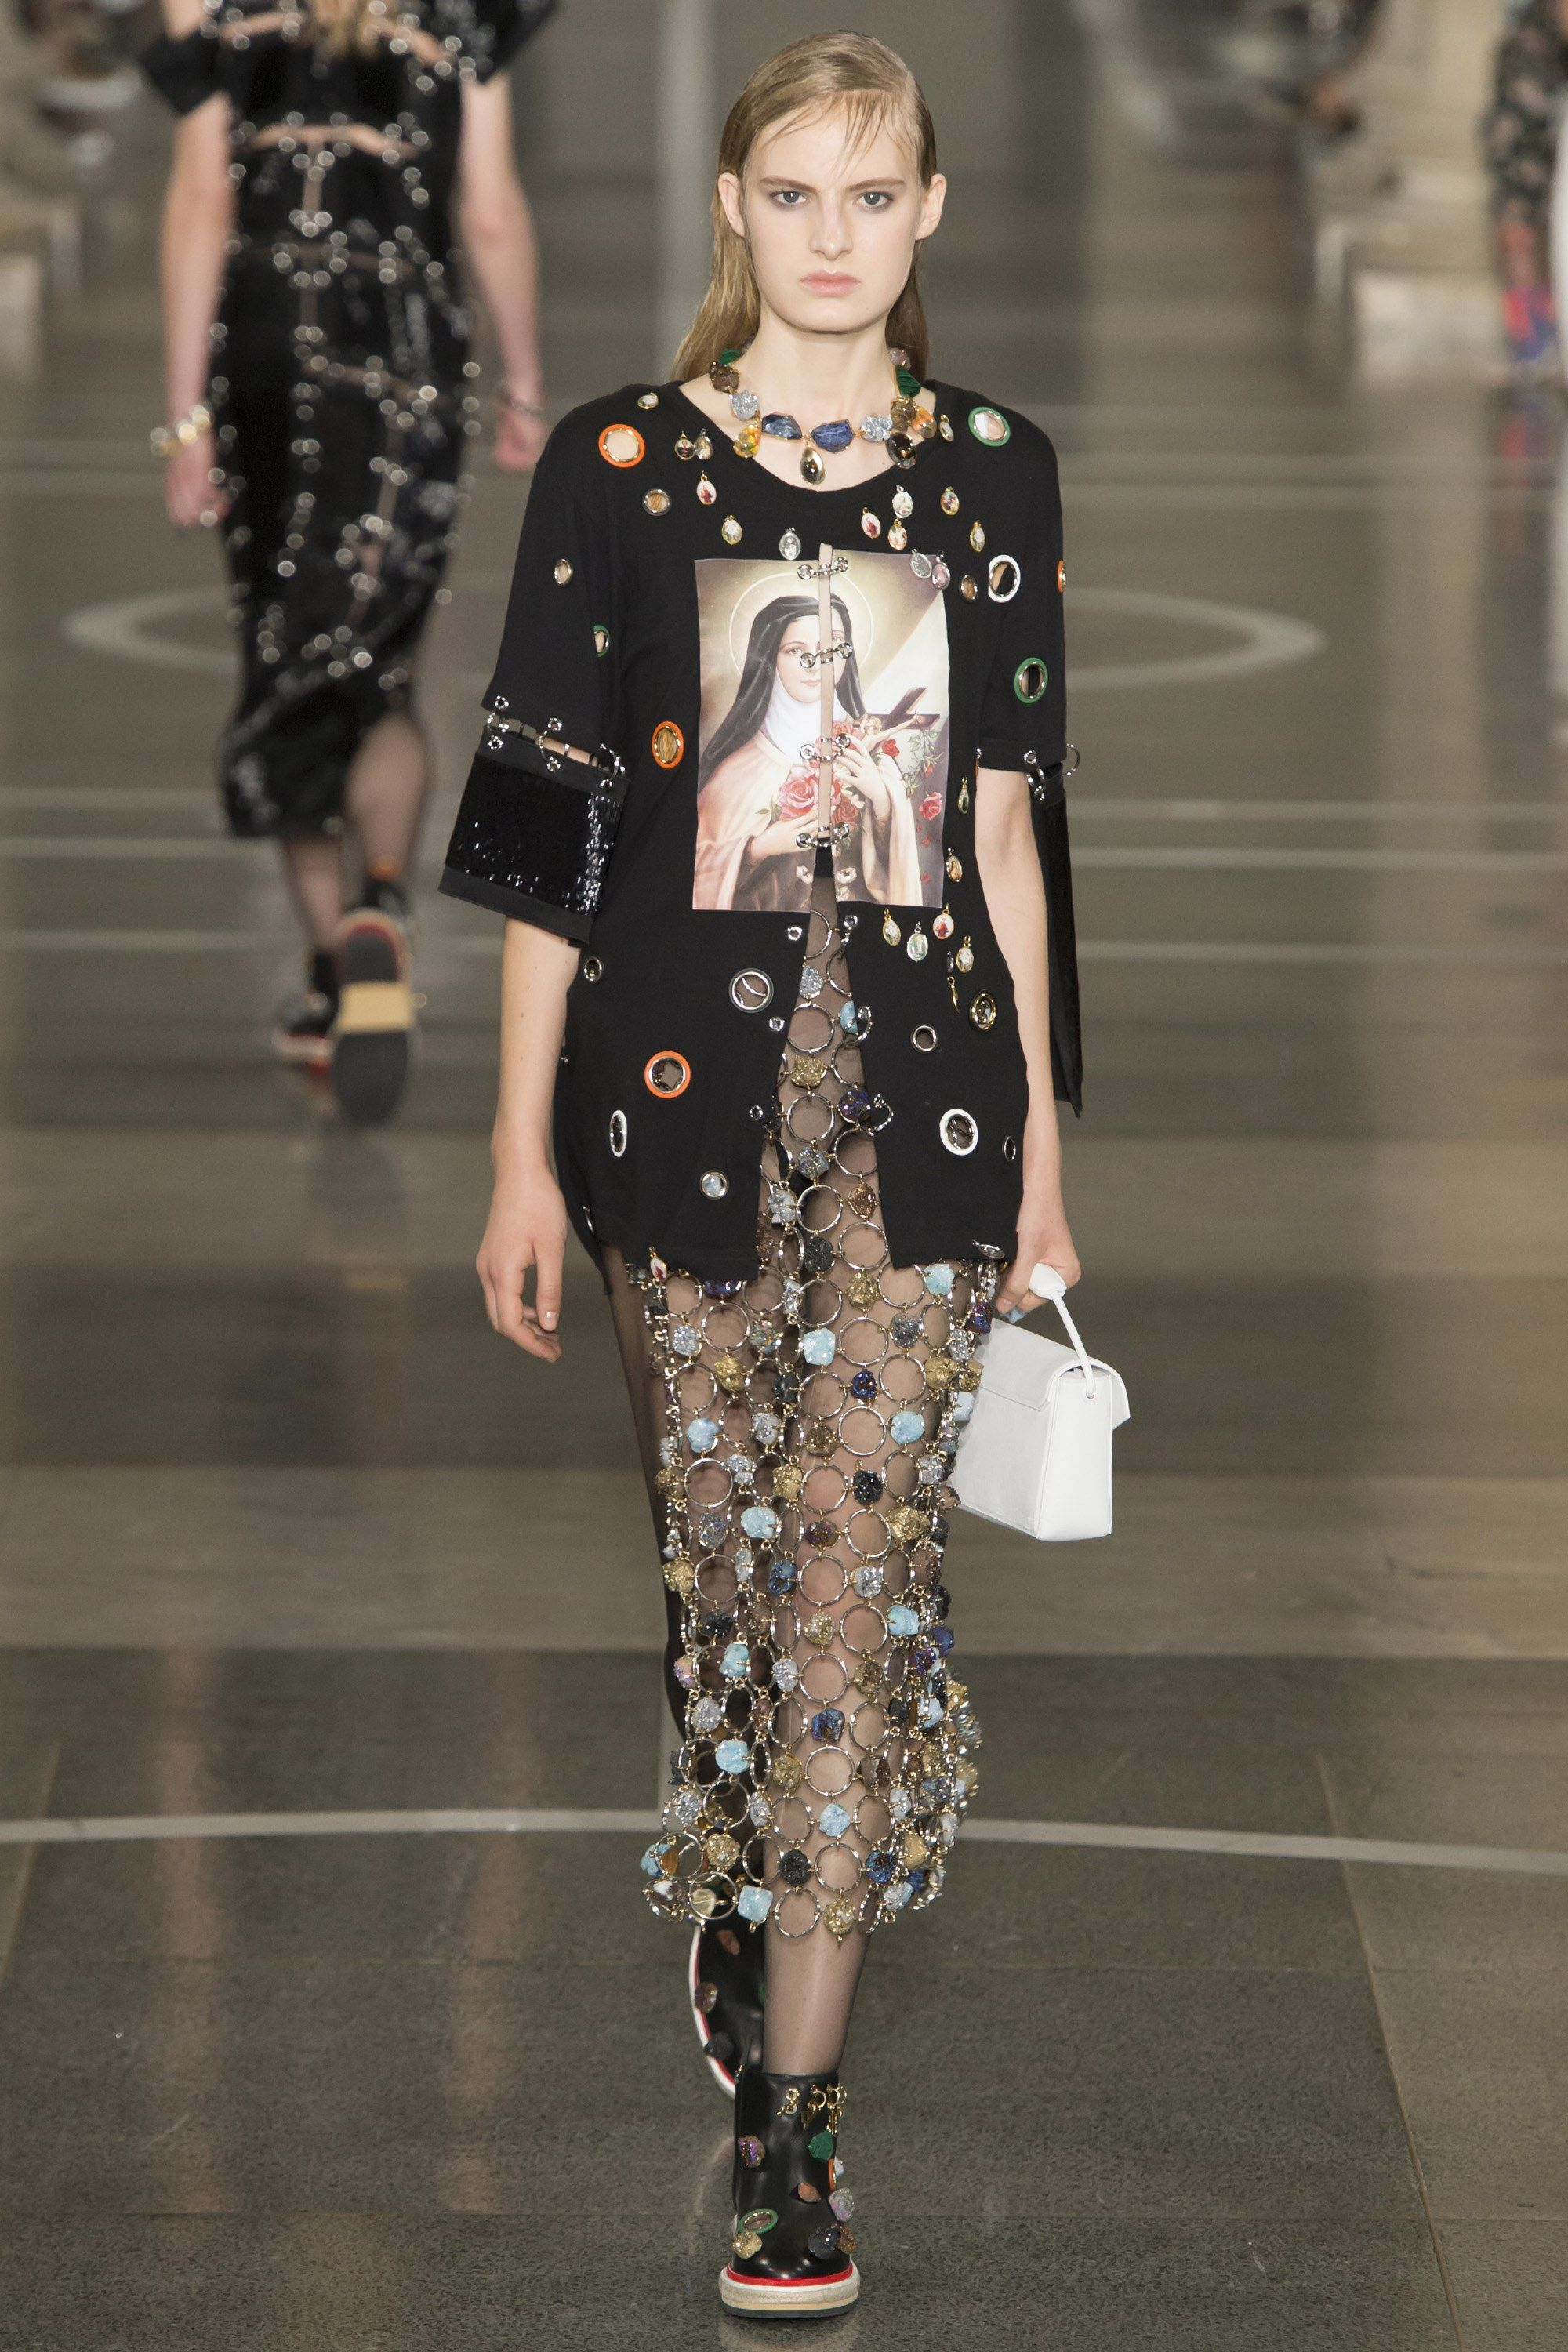 No one blinked at the marc jacobs fashion show when a model wore a - Christopher Kane Spring 2017 Ready To Wear Fashion Show Zoe Von Gerlach More